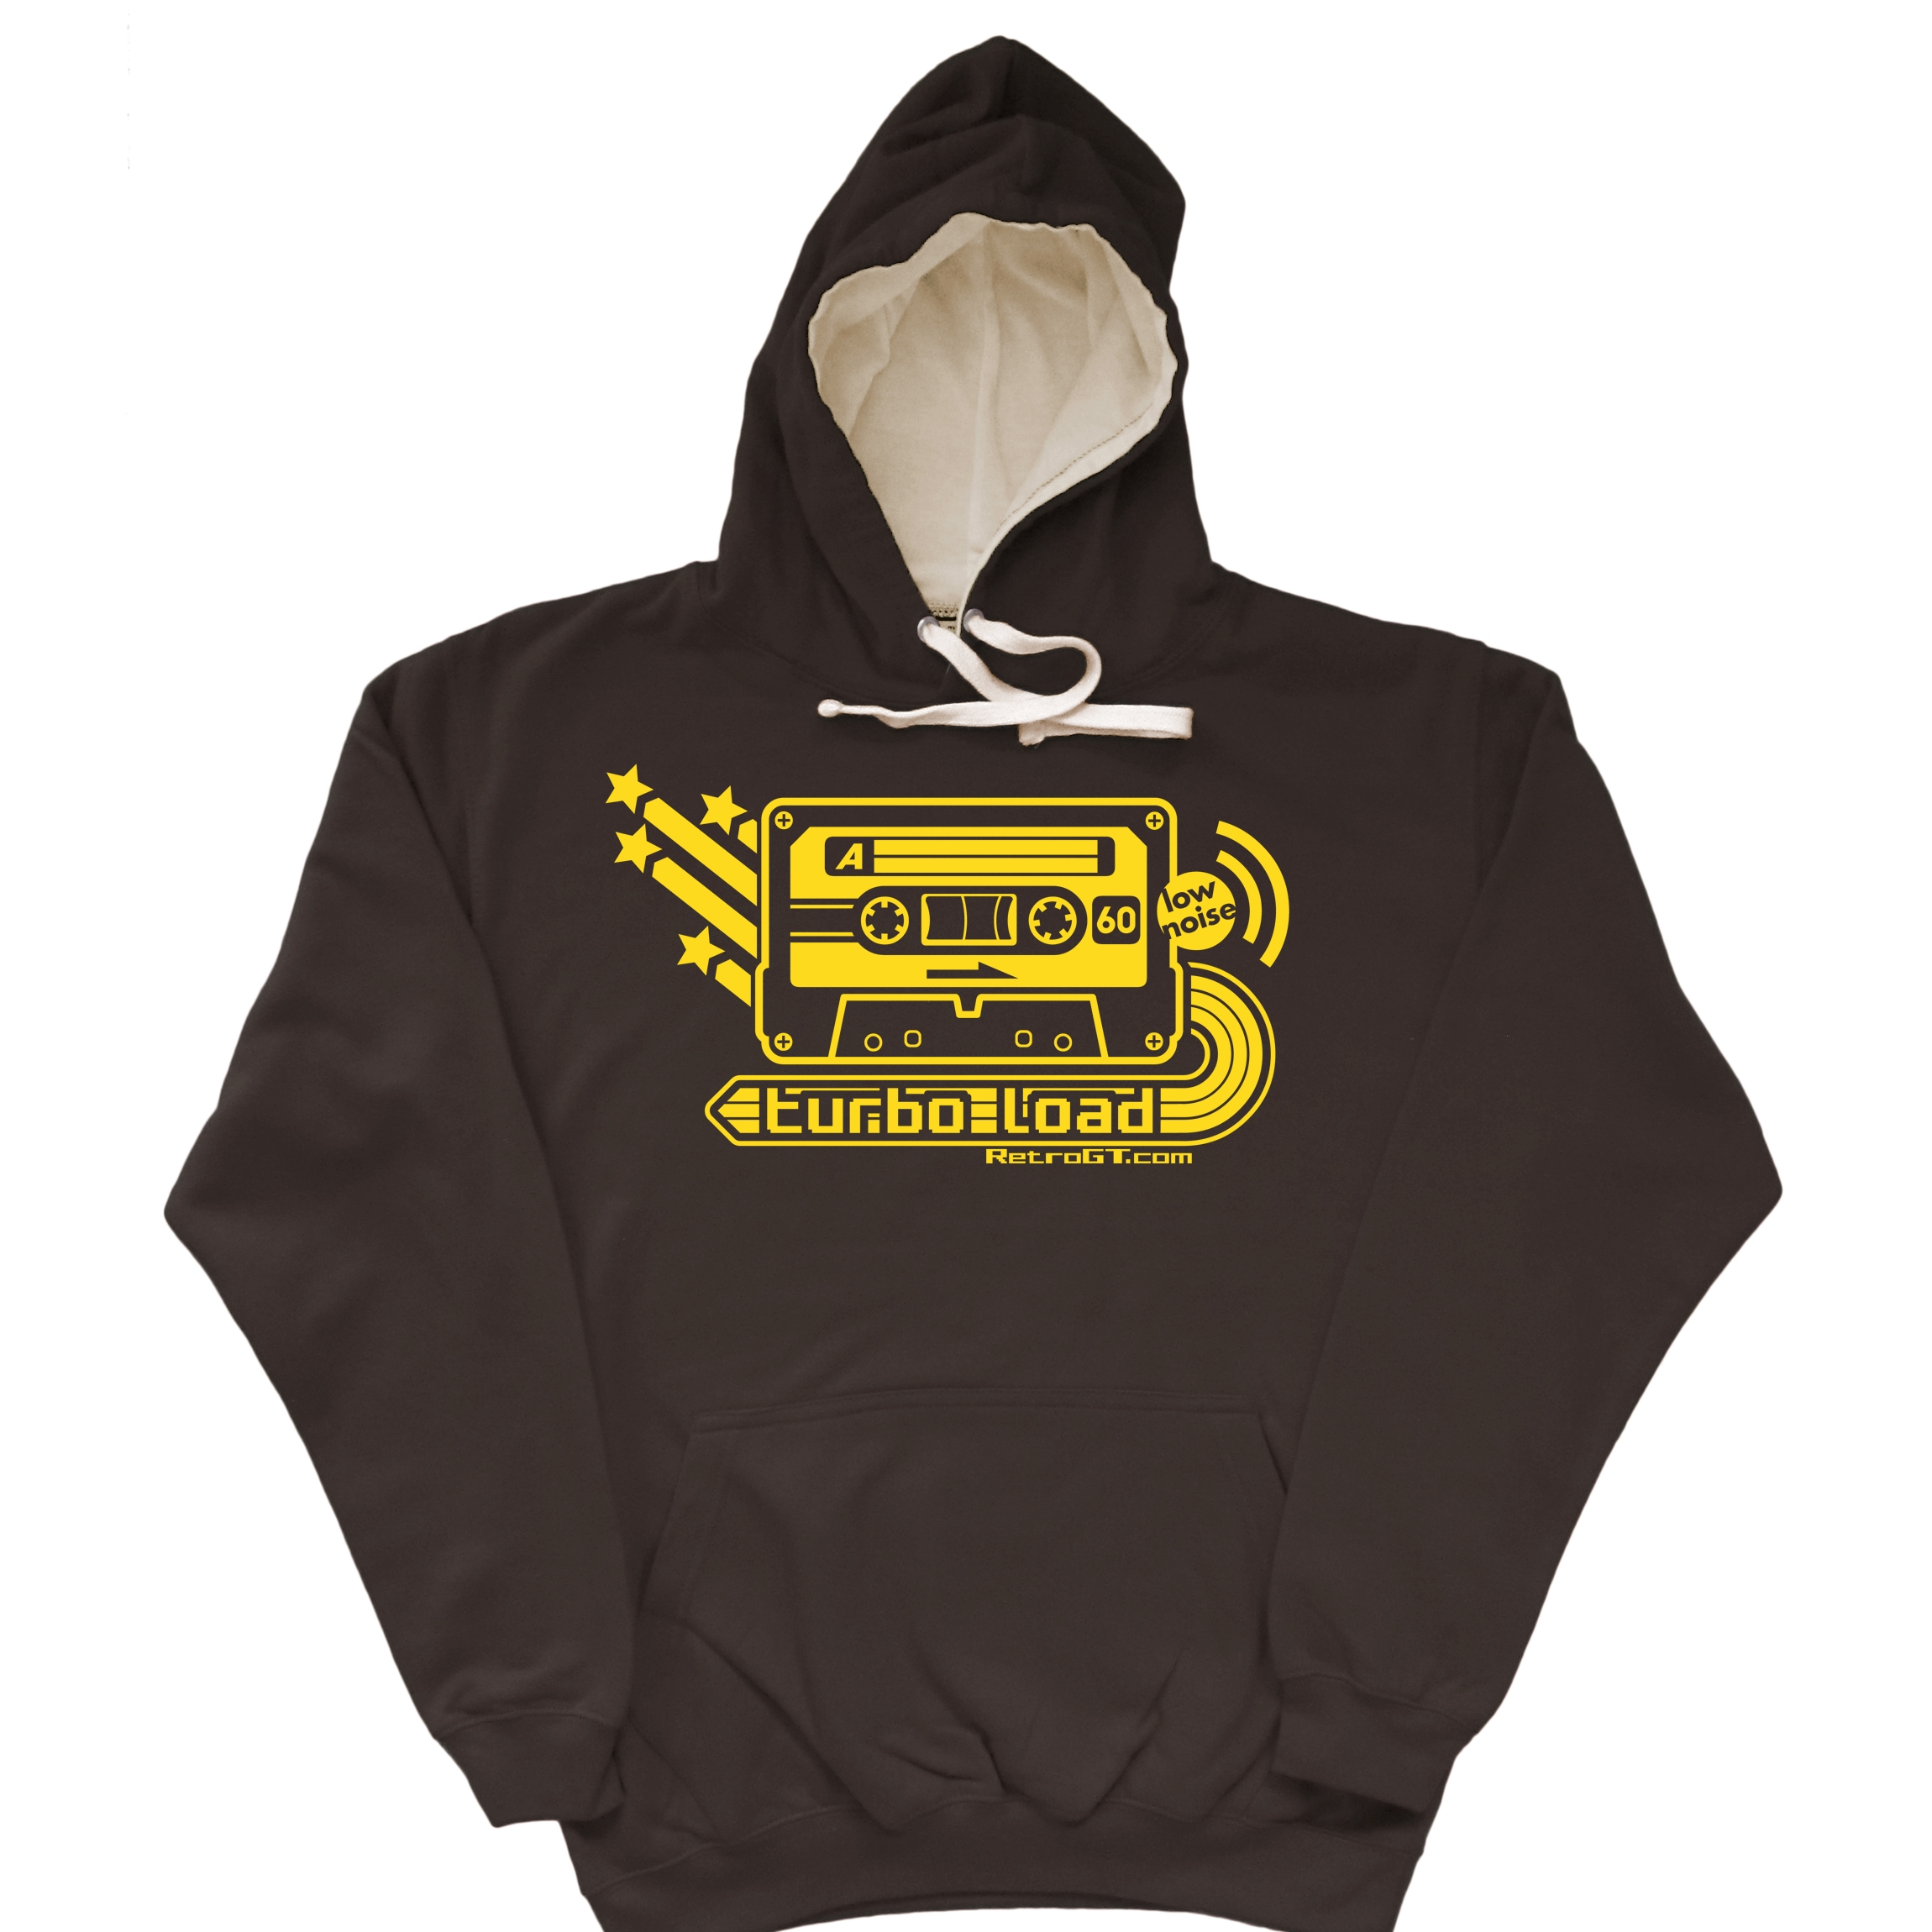 Alternative photo: Cassette Tape Hoodie